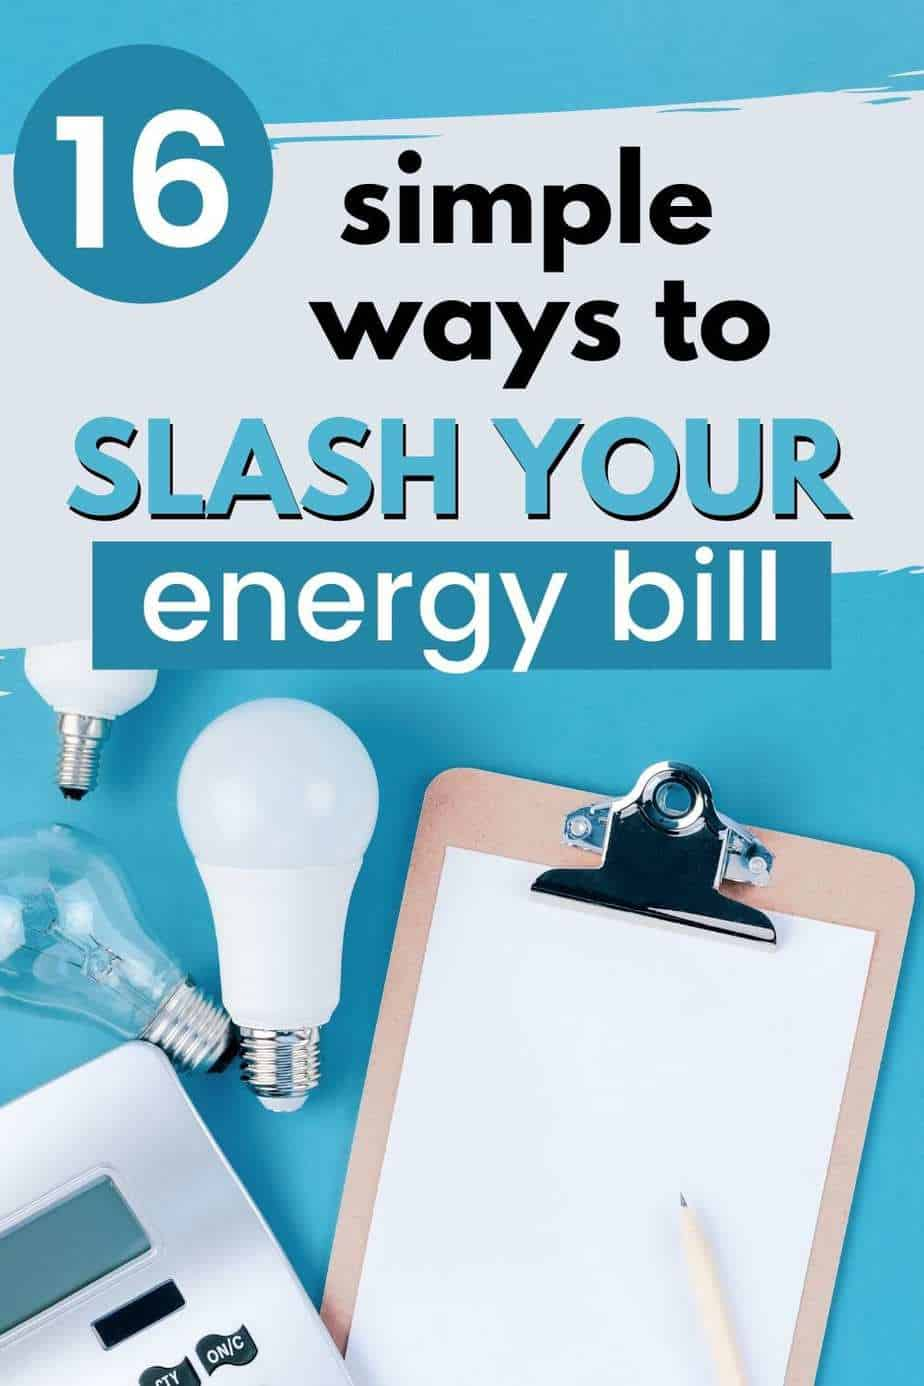 16 simple ways to slash your energy bill